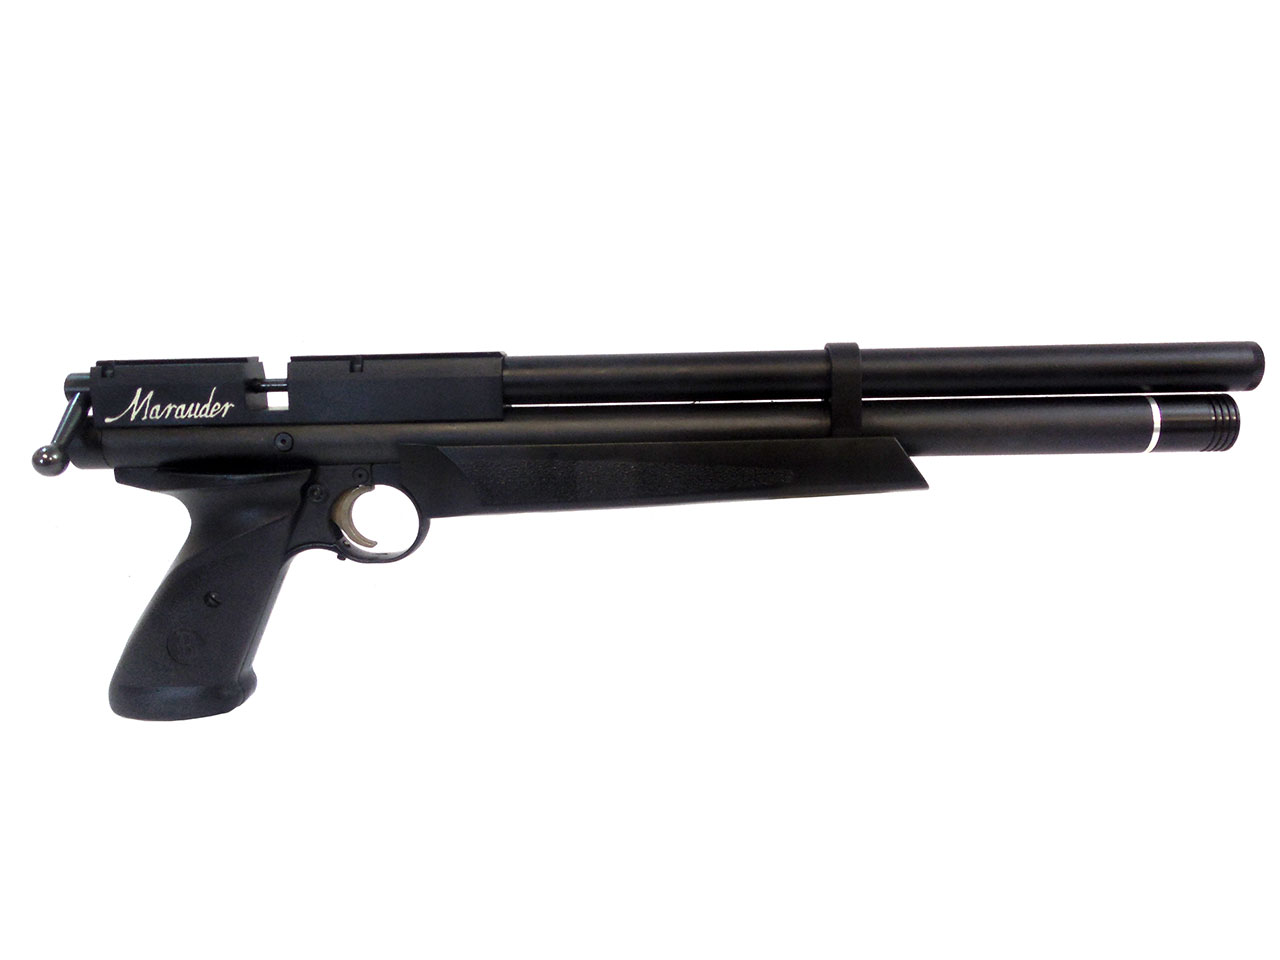 Benjamin Marauder BP2220 Air Pistol with Shoulder Stock